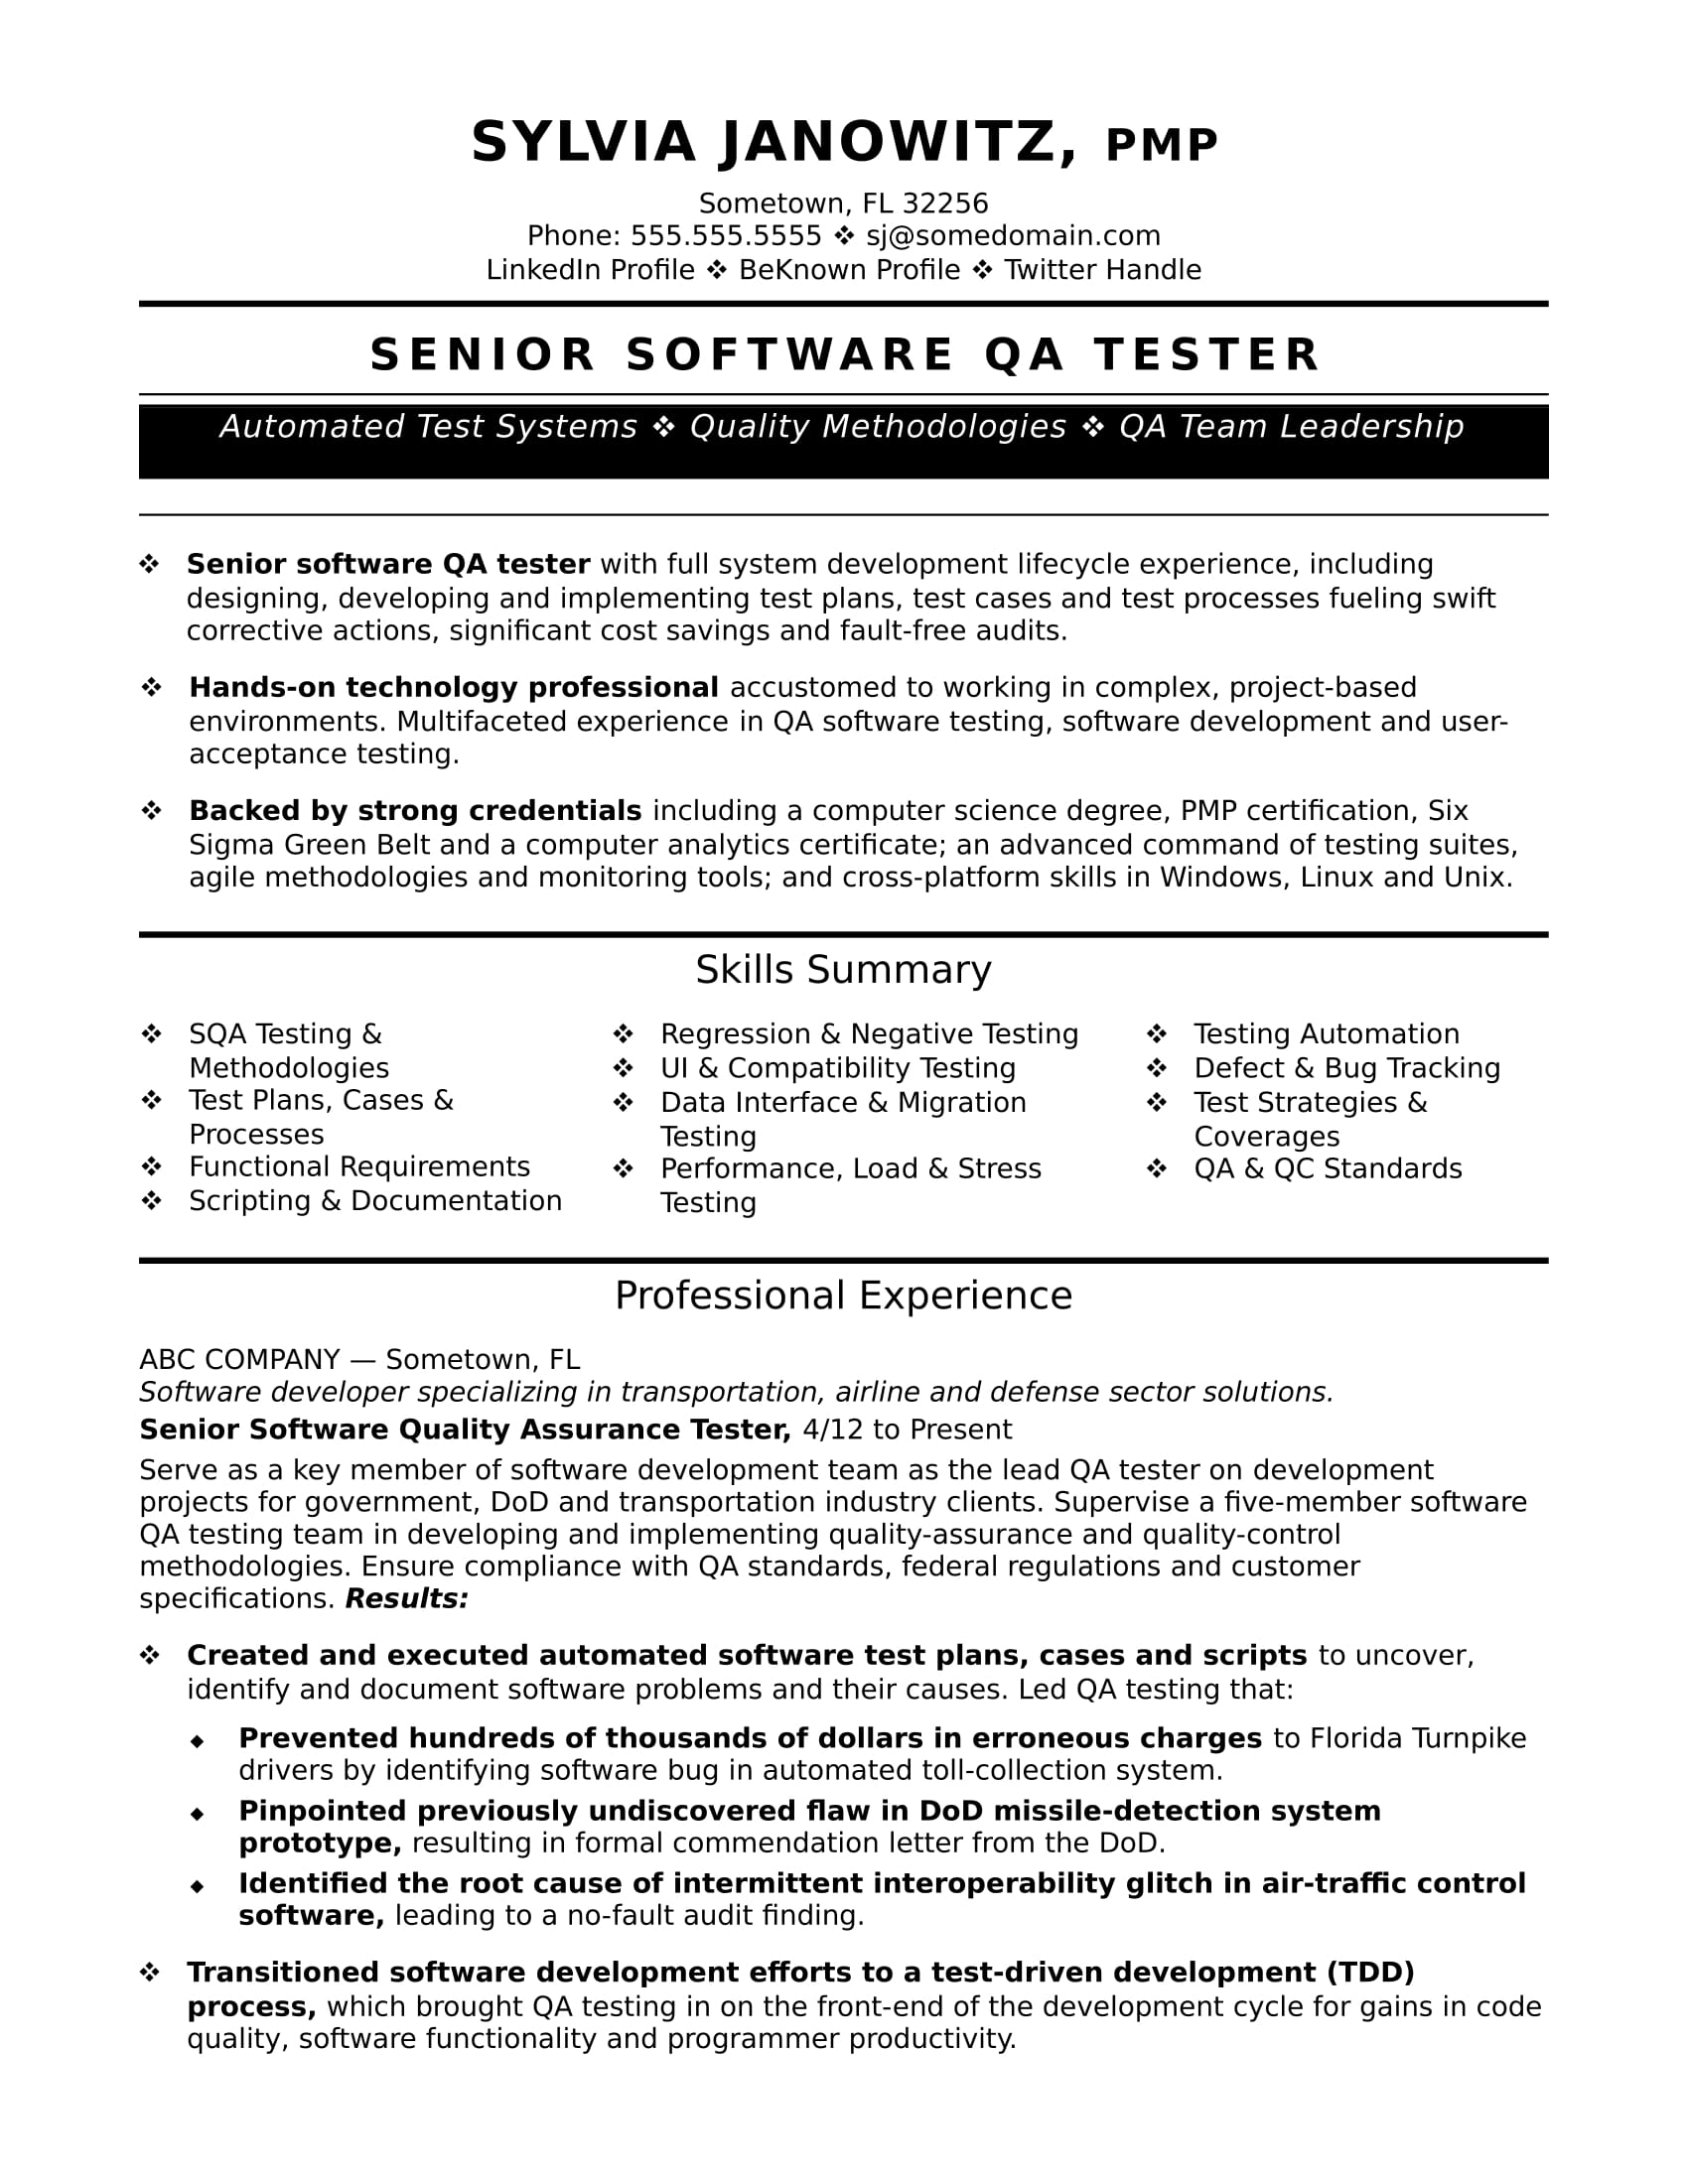 Experienced QA Software Tester